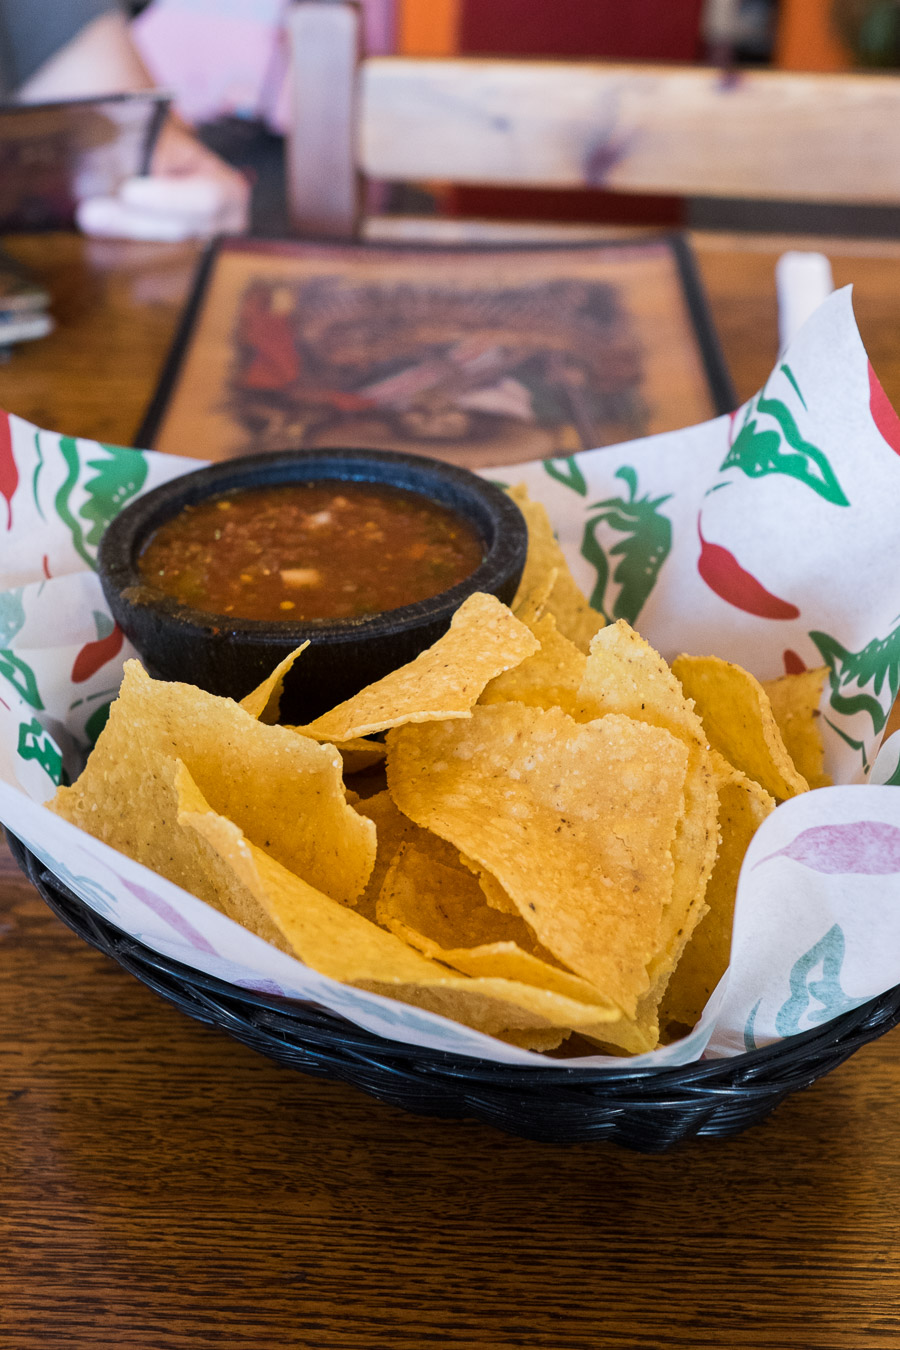 Corn chips and salsa at Zapata's.